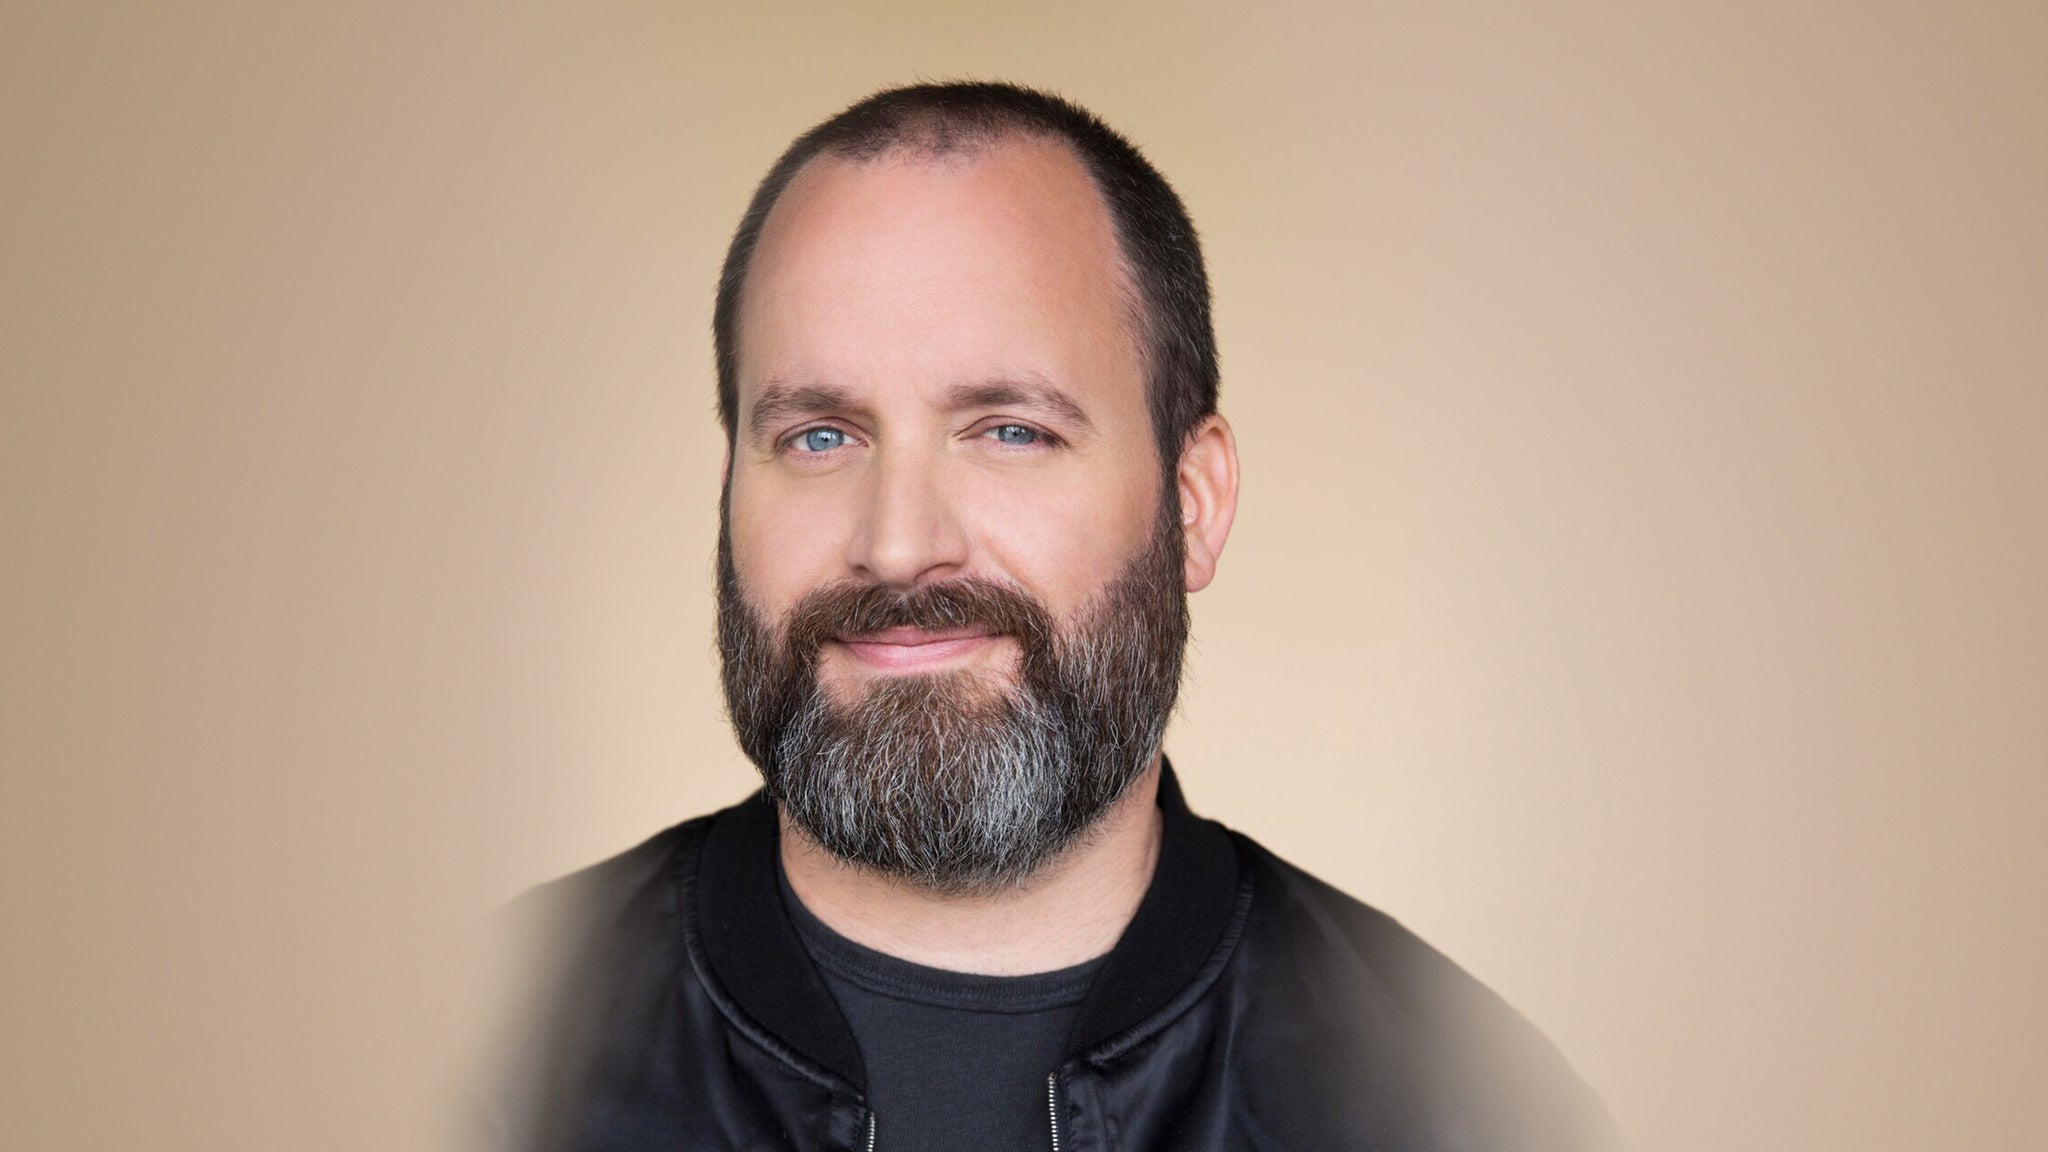 Tom Segura at Irvine Improv - Irvine, CA 92618